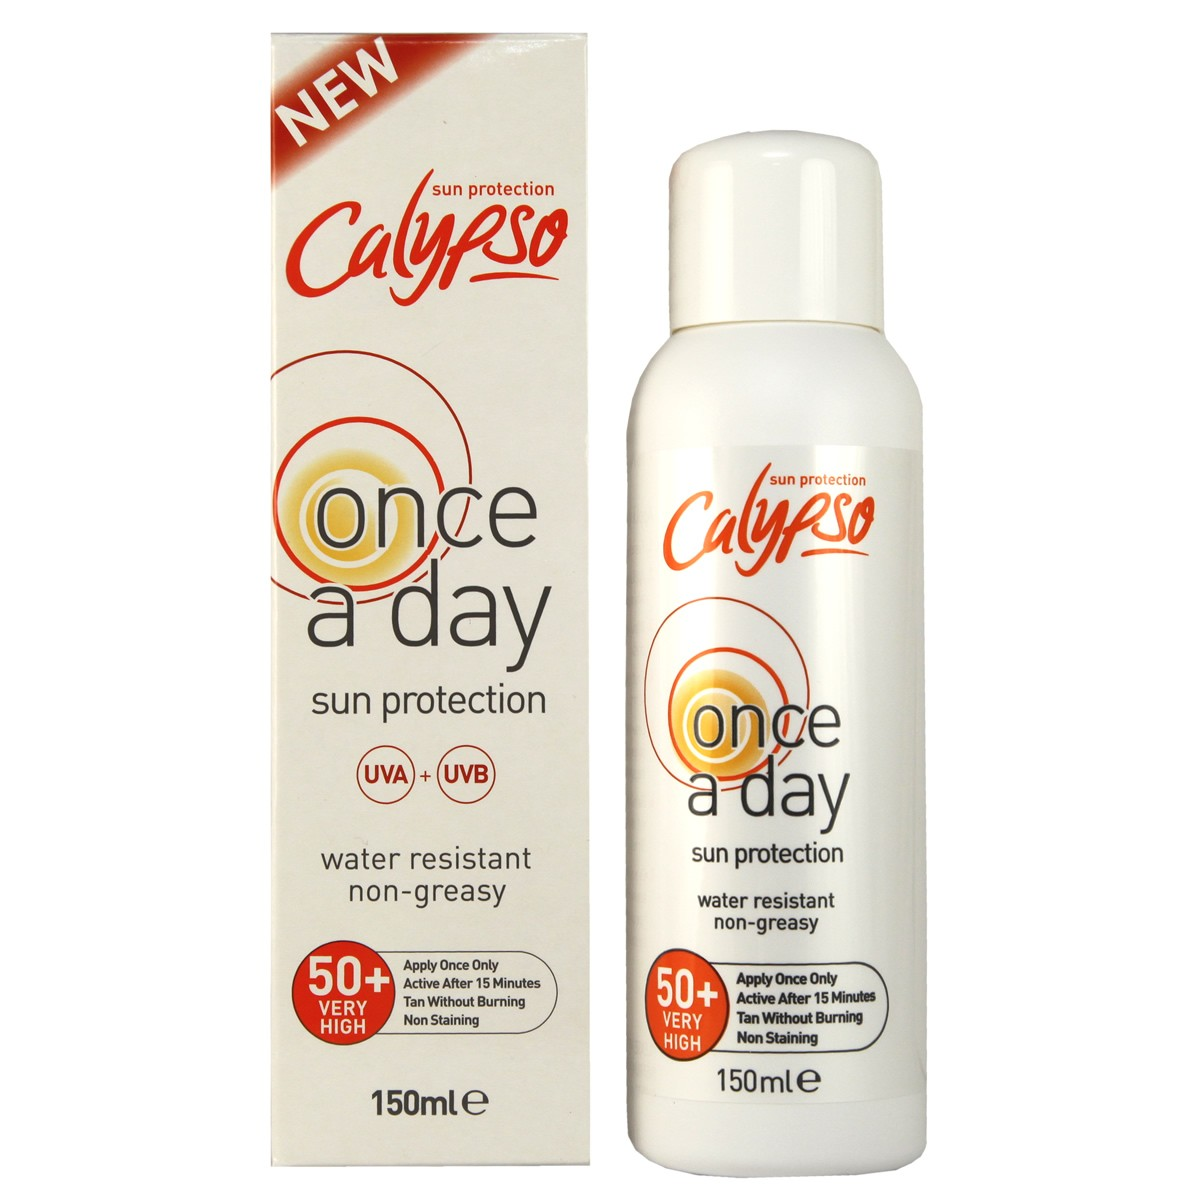 Calypso Once a Day Sun Protection SPF50+